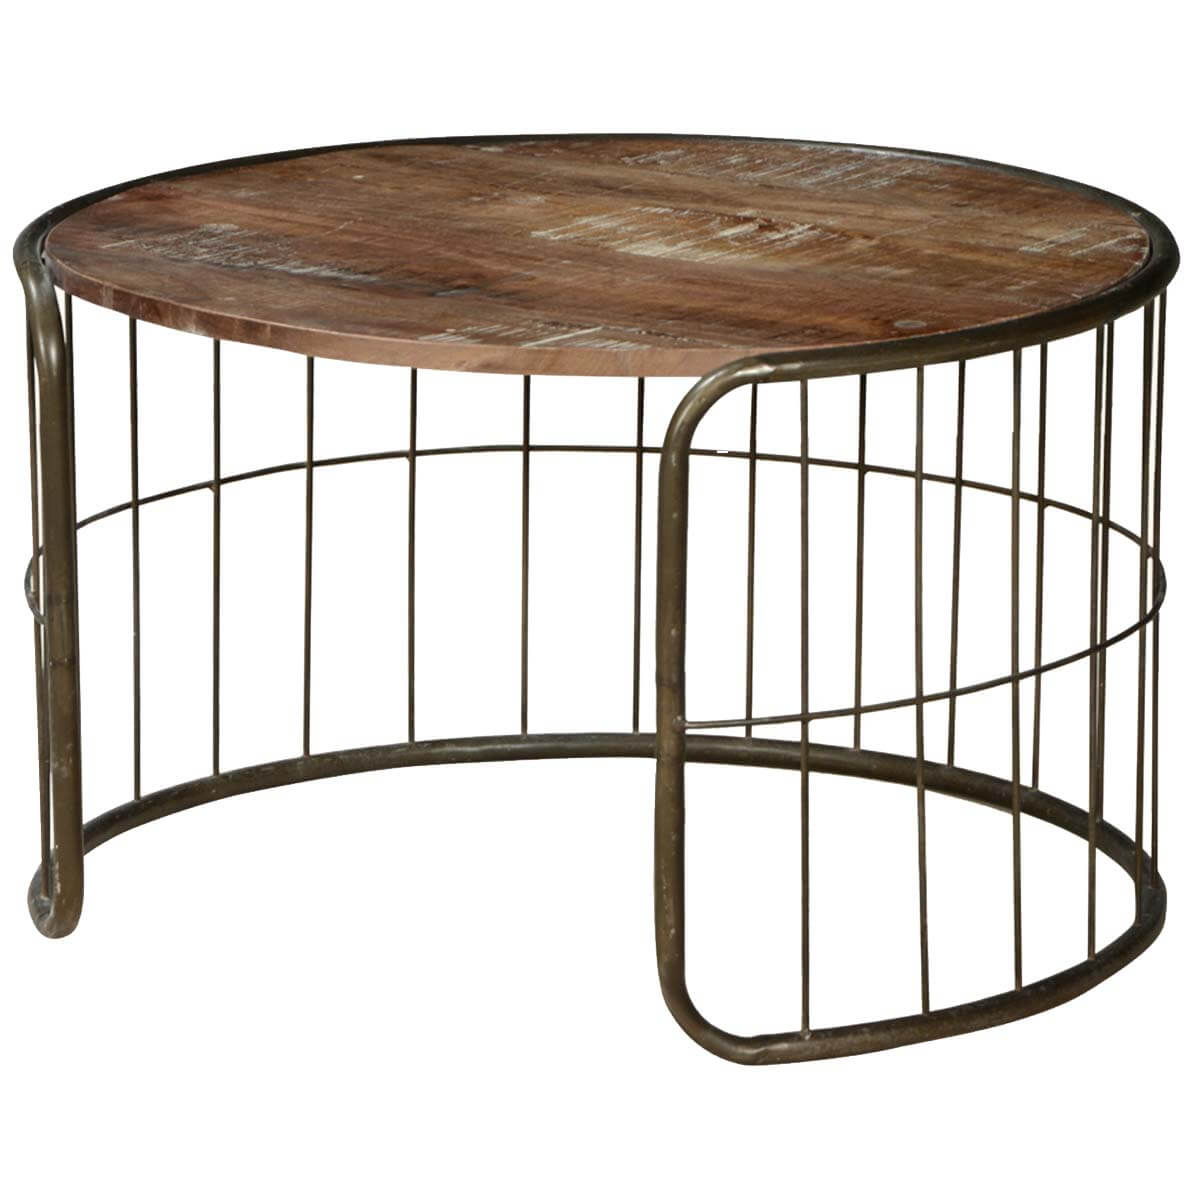 On The Fence Mango Wood Amp Iron Rustic 30 Round Coffee Table